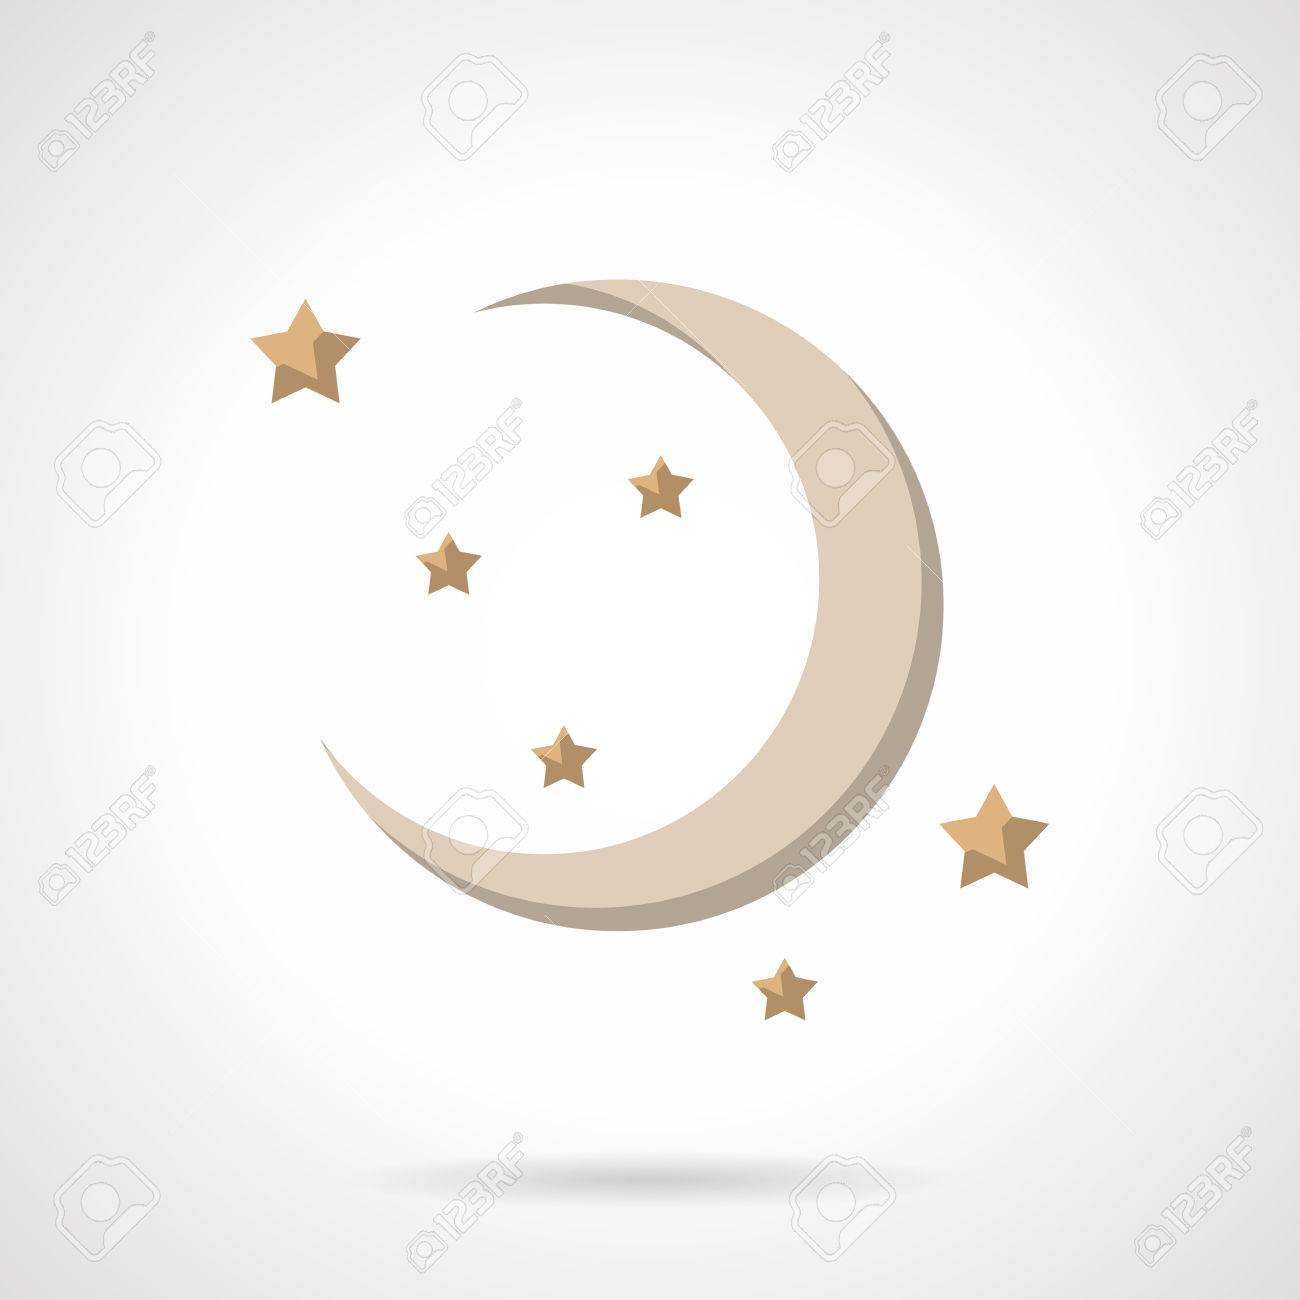 Astronomy and astrology moon symbol  New beige crescent and stars